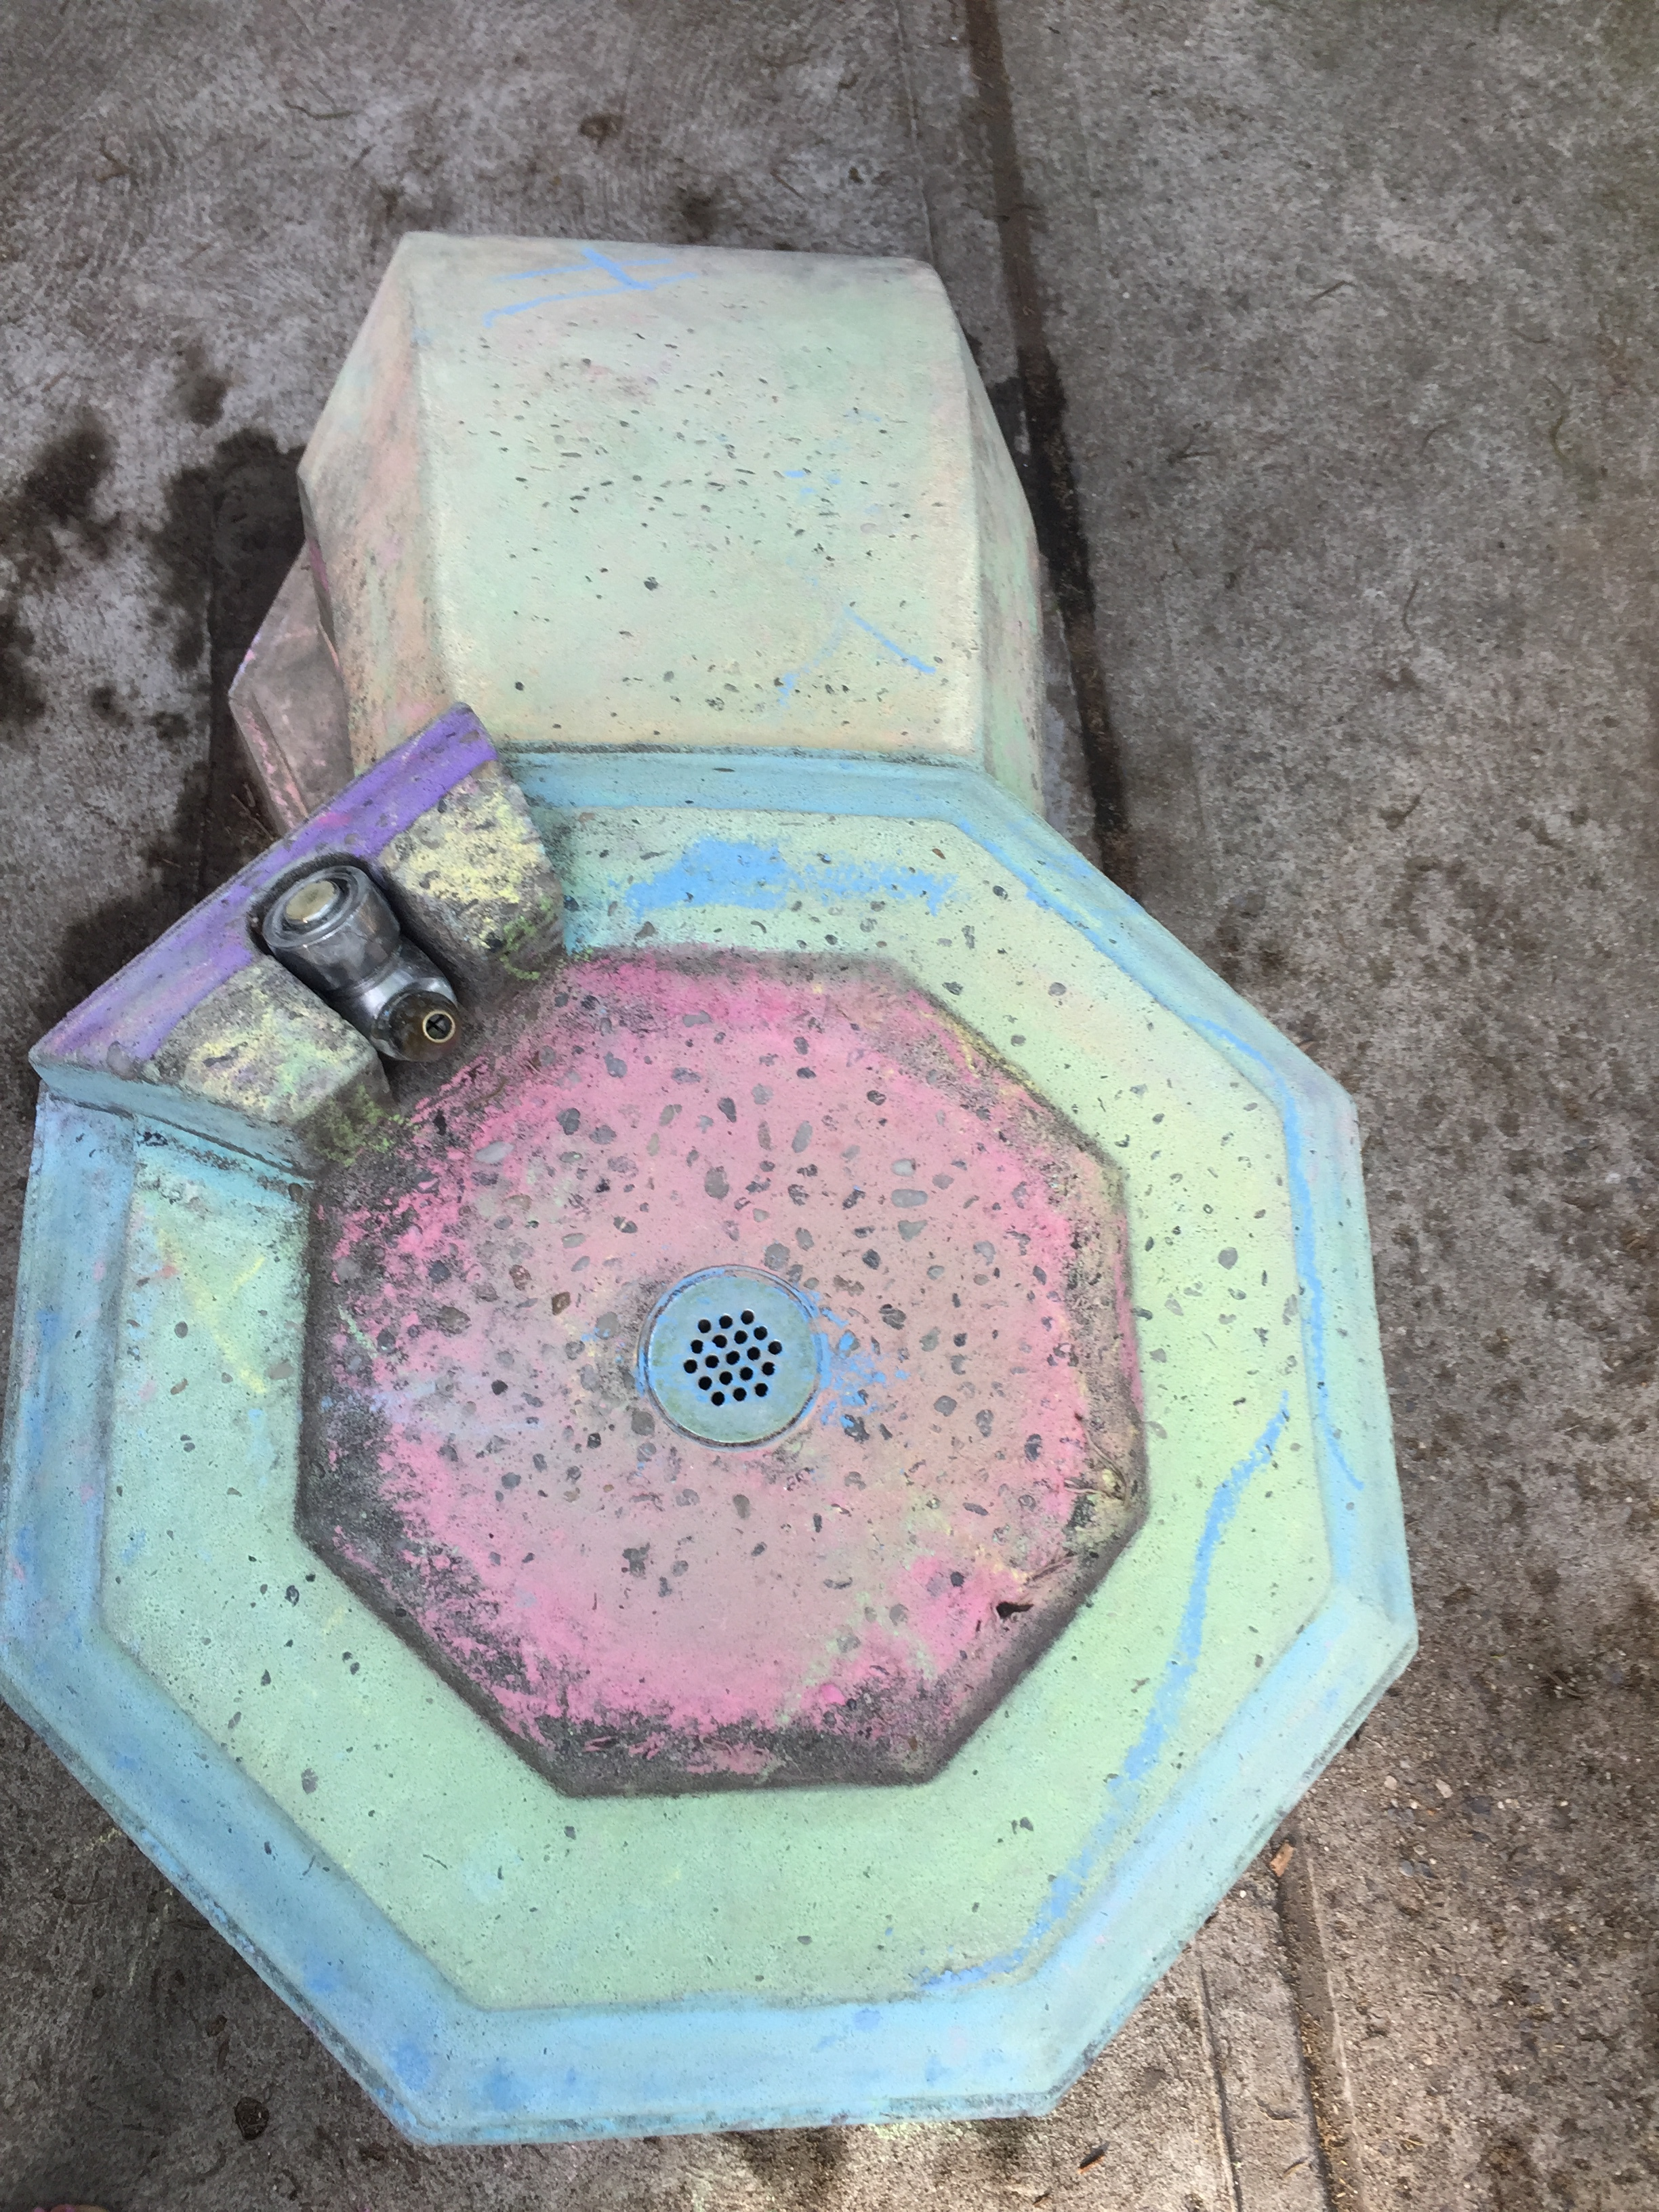 Playground art :) (Not by us, still thought it was cool though!)